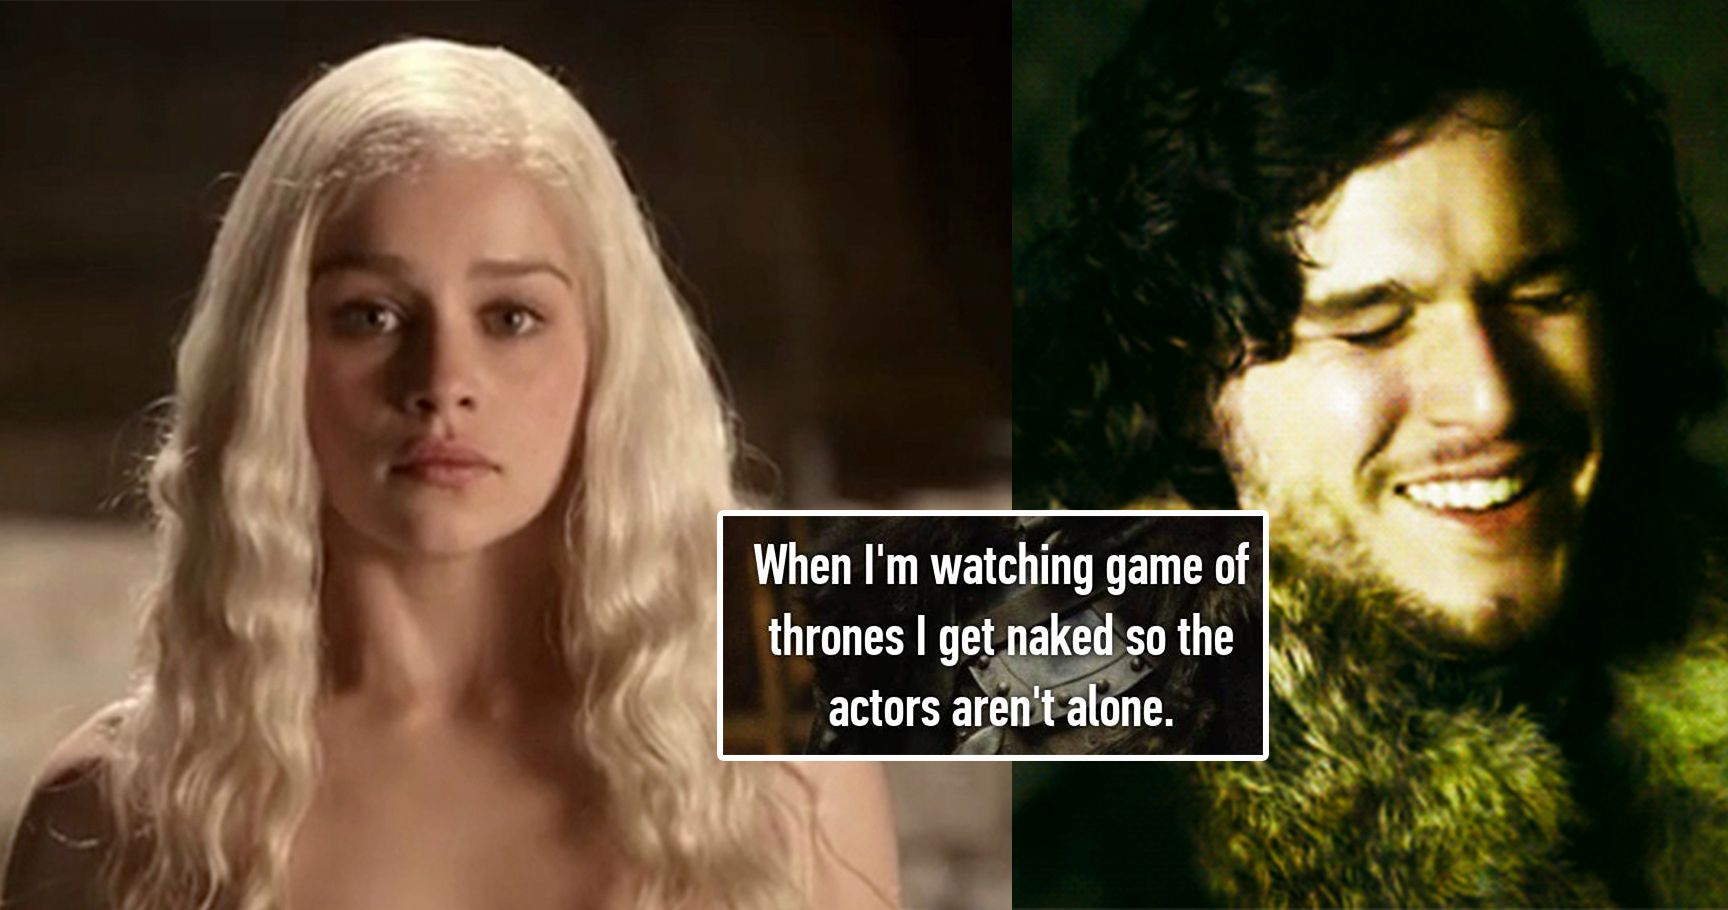 15 Startling Confessions From Obsessed 'Game Of Thrones' Fans